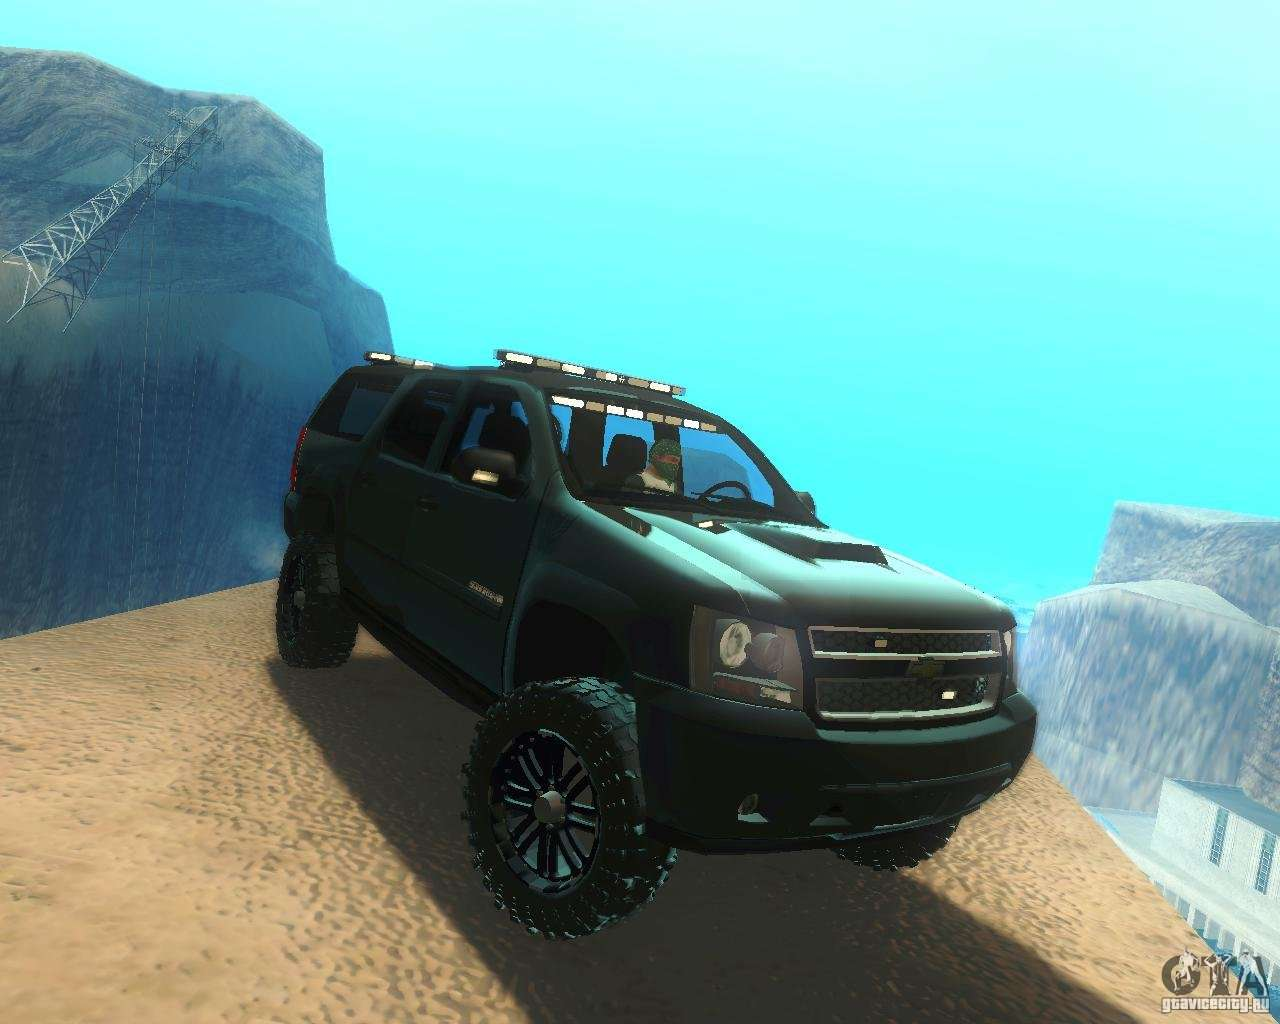 S P I W also Velisting Photo   Ashx W   H   Mode Crop   Default   Bgcolor White   S likewise Maxresdefault also Gta Sa likewise D Tahoe Splash Guards Exhaust Tip. on chevy tahoe suburban